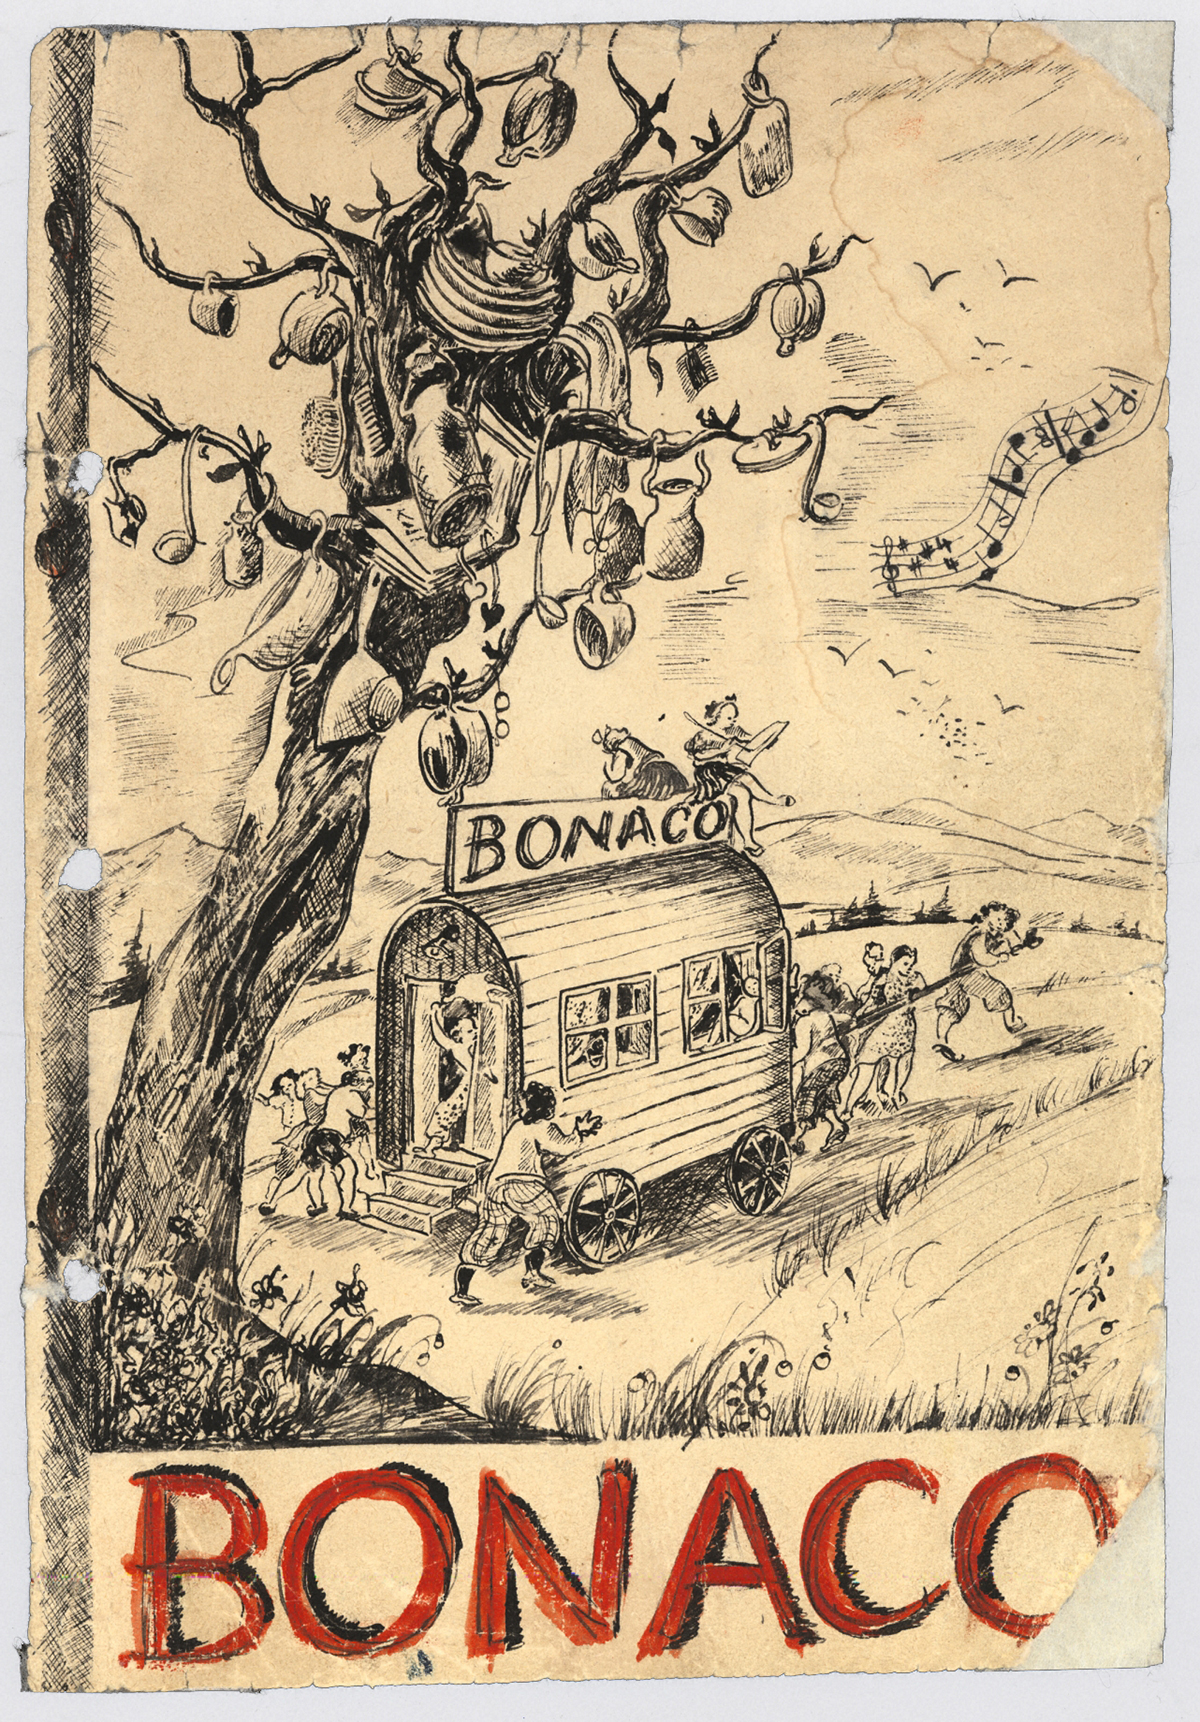 Illustrated cover for a Bonaco issue. Children pull a large covered wagon past a tree where pottery hangs from the branches